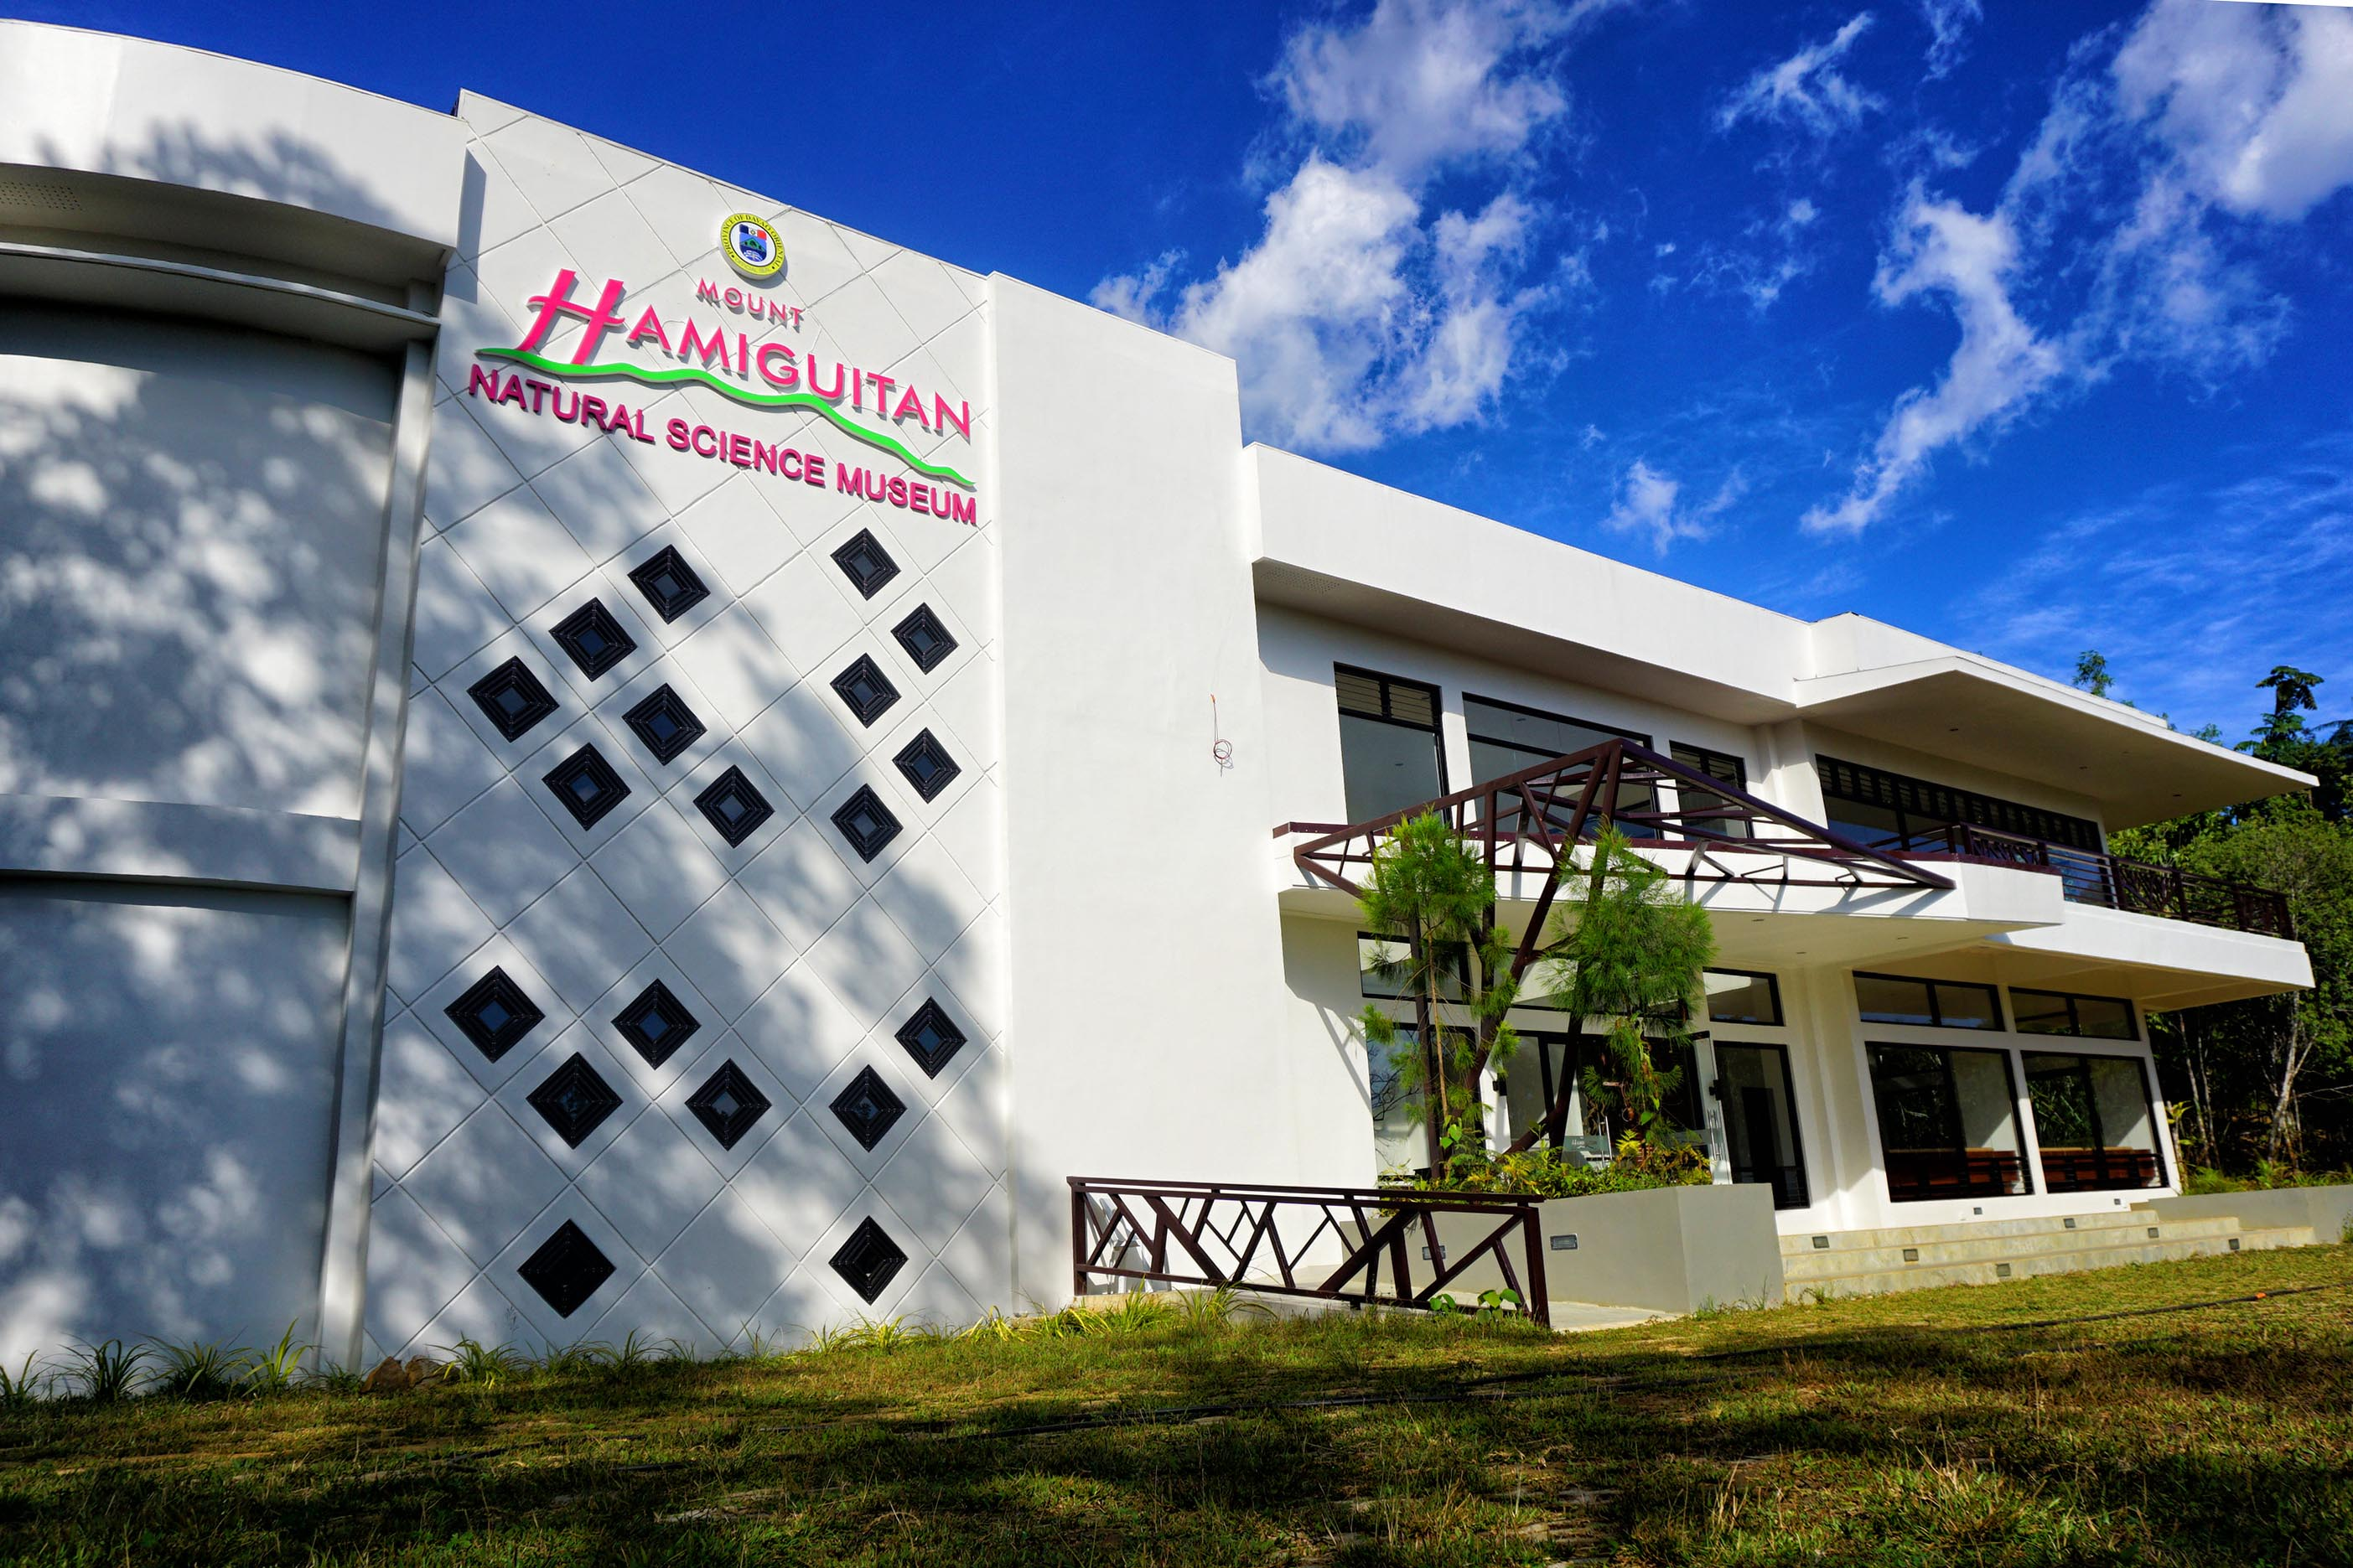 The Mt. Hamiguitan Natural Science Museum is now open at the foot of the UNESCO World Heritage Site in San Isidro town in Davao Oriental. Photo by Louie Lapat